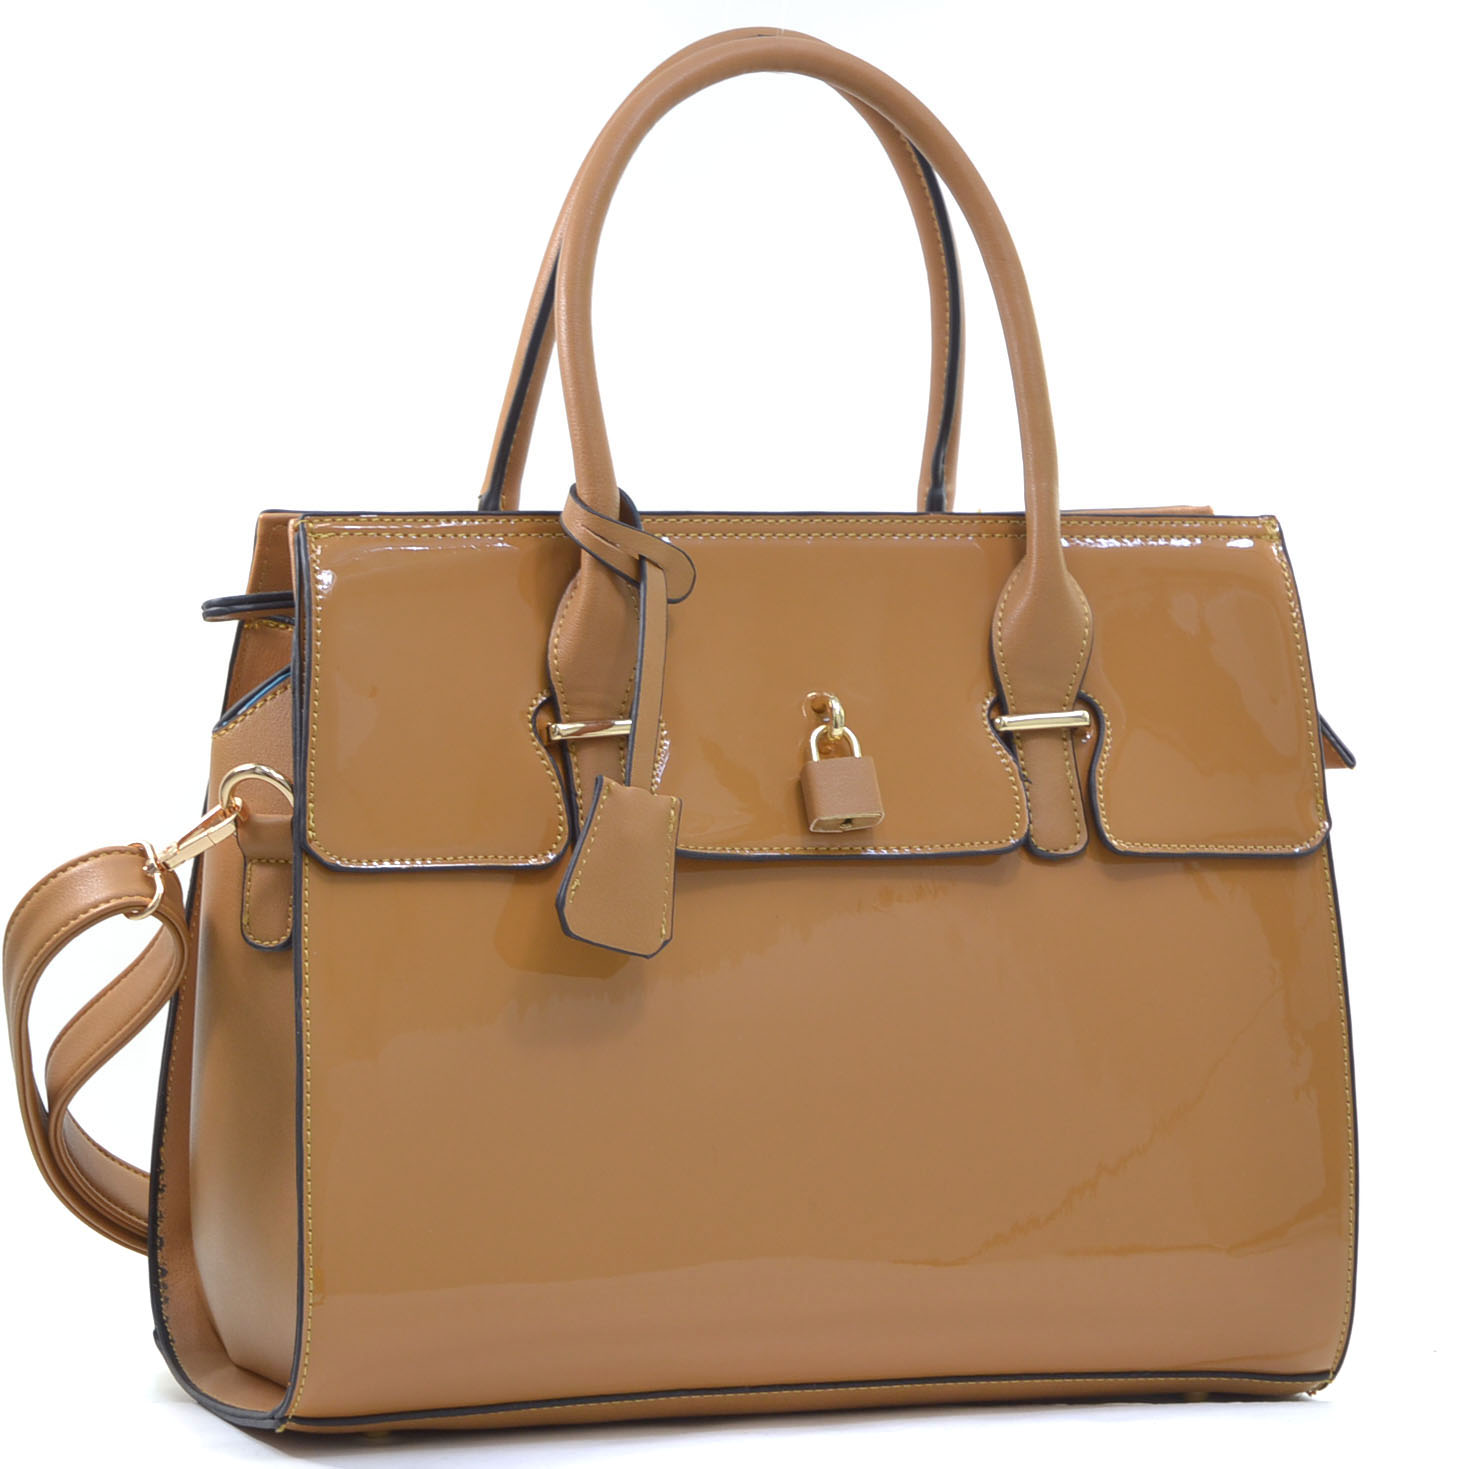 Patent Faux Leather Padlock Satchel with Shoulder Strap